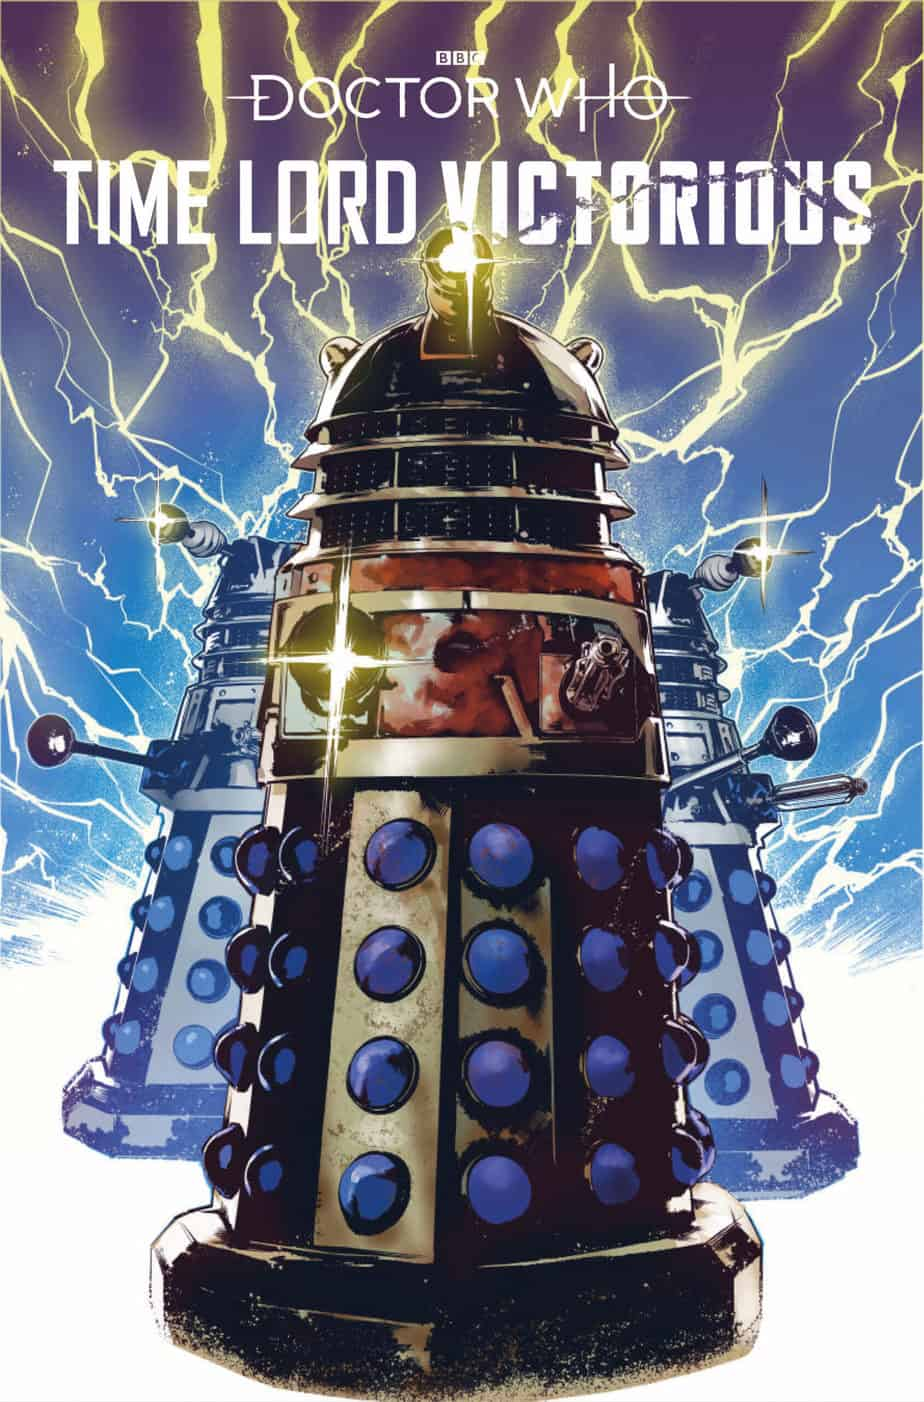 Doctor Who: Time Lord Victorious #1 - Cover D